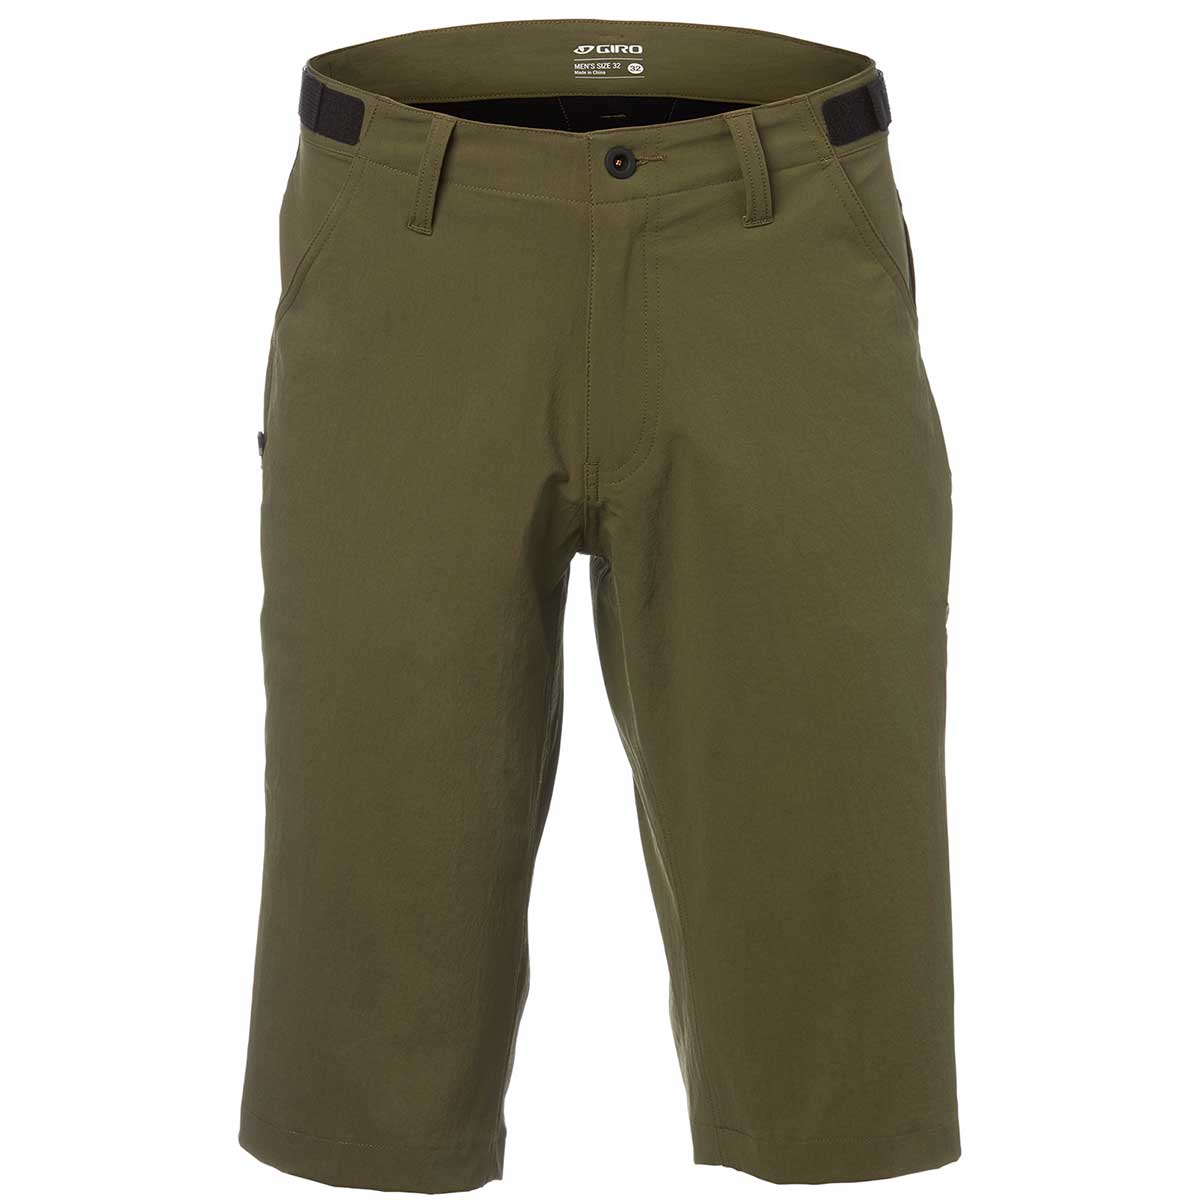 Giro men's Truant Short in Olive front view